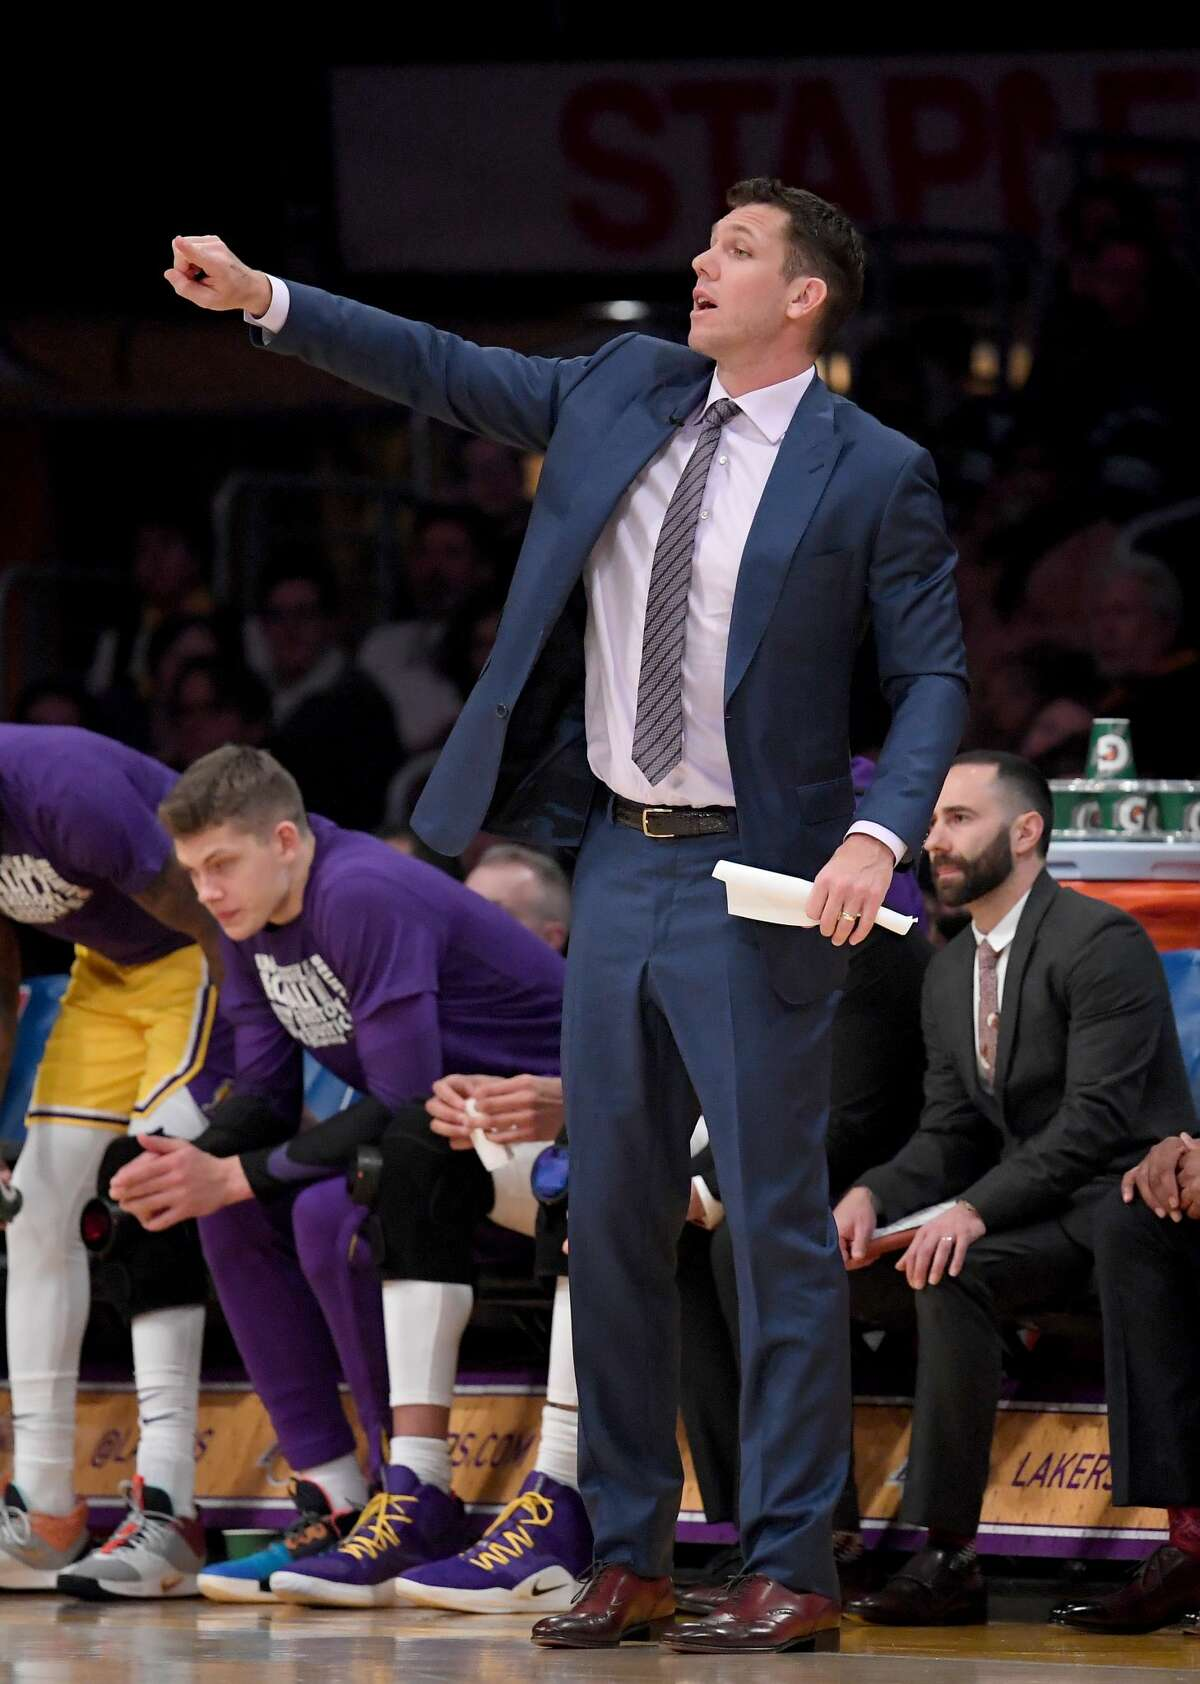 LOS ANGELES, CALIFORNIA - FEBRUARY 21: Luke Walton of the Los Angeles Lakers calls out of play during a 111-106 Laker win over the Houston Rockets at Staples Center on February 21, 2019 in Los Angeles, California. (Photo by Harry How/Getty Images)